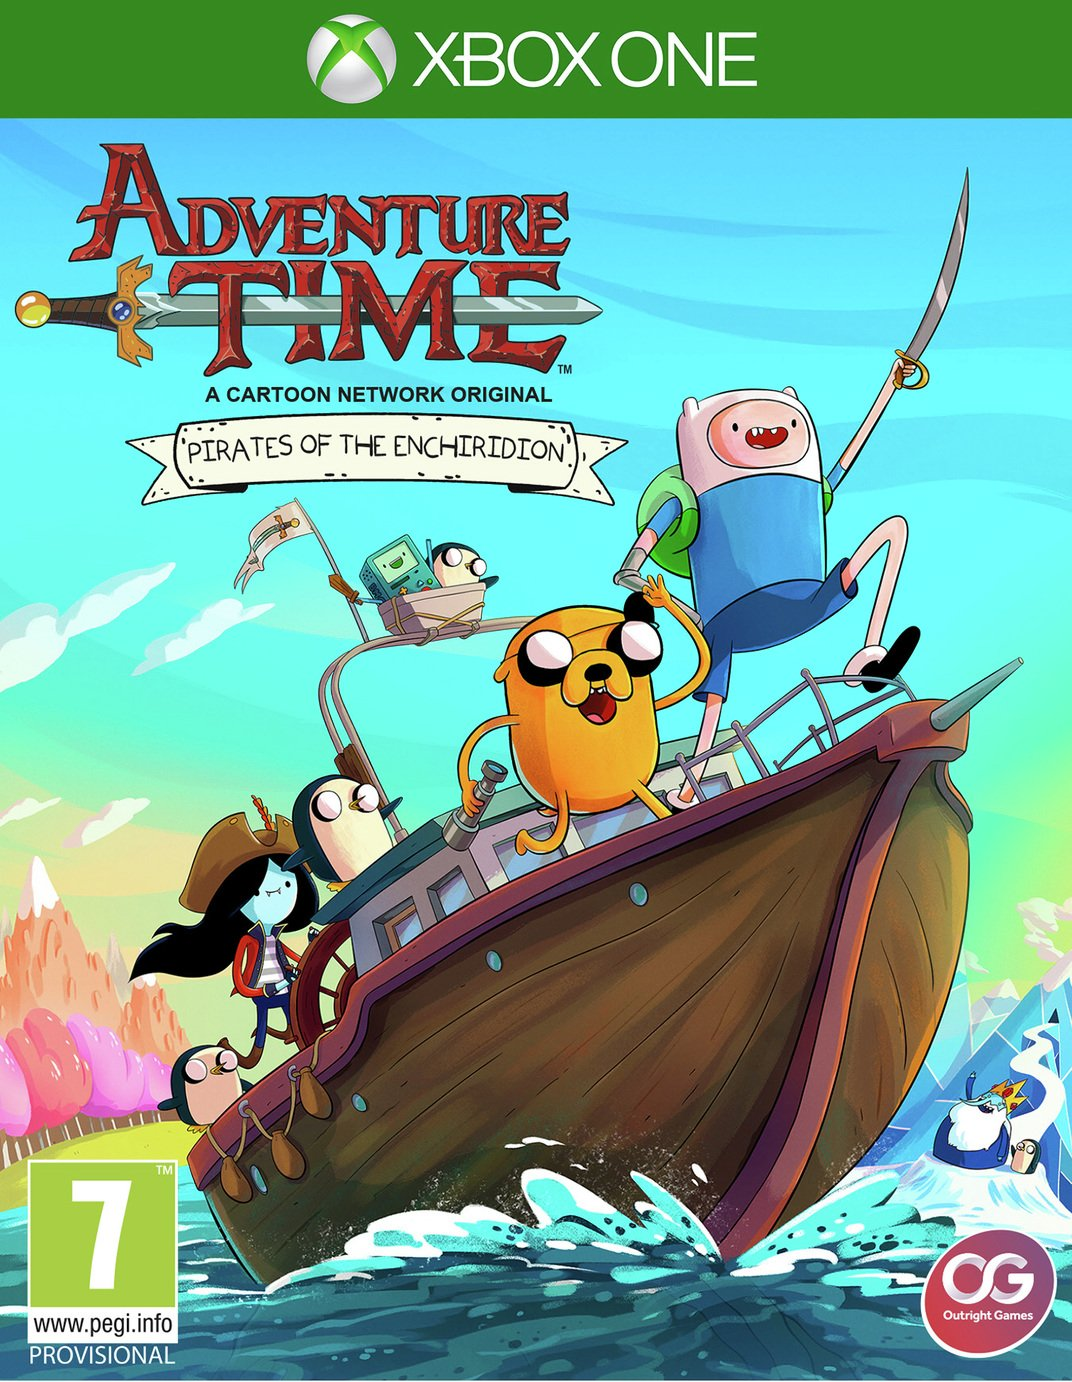 Image of Adventure Time Pirates Enchiridion Xbox One Pre-Order Game